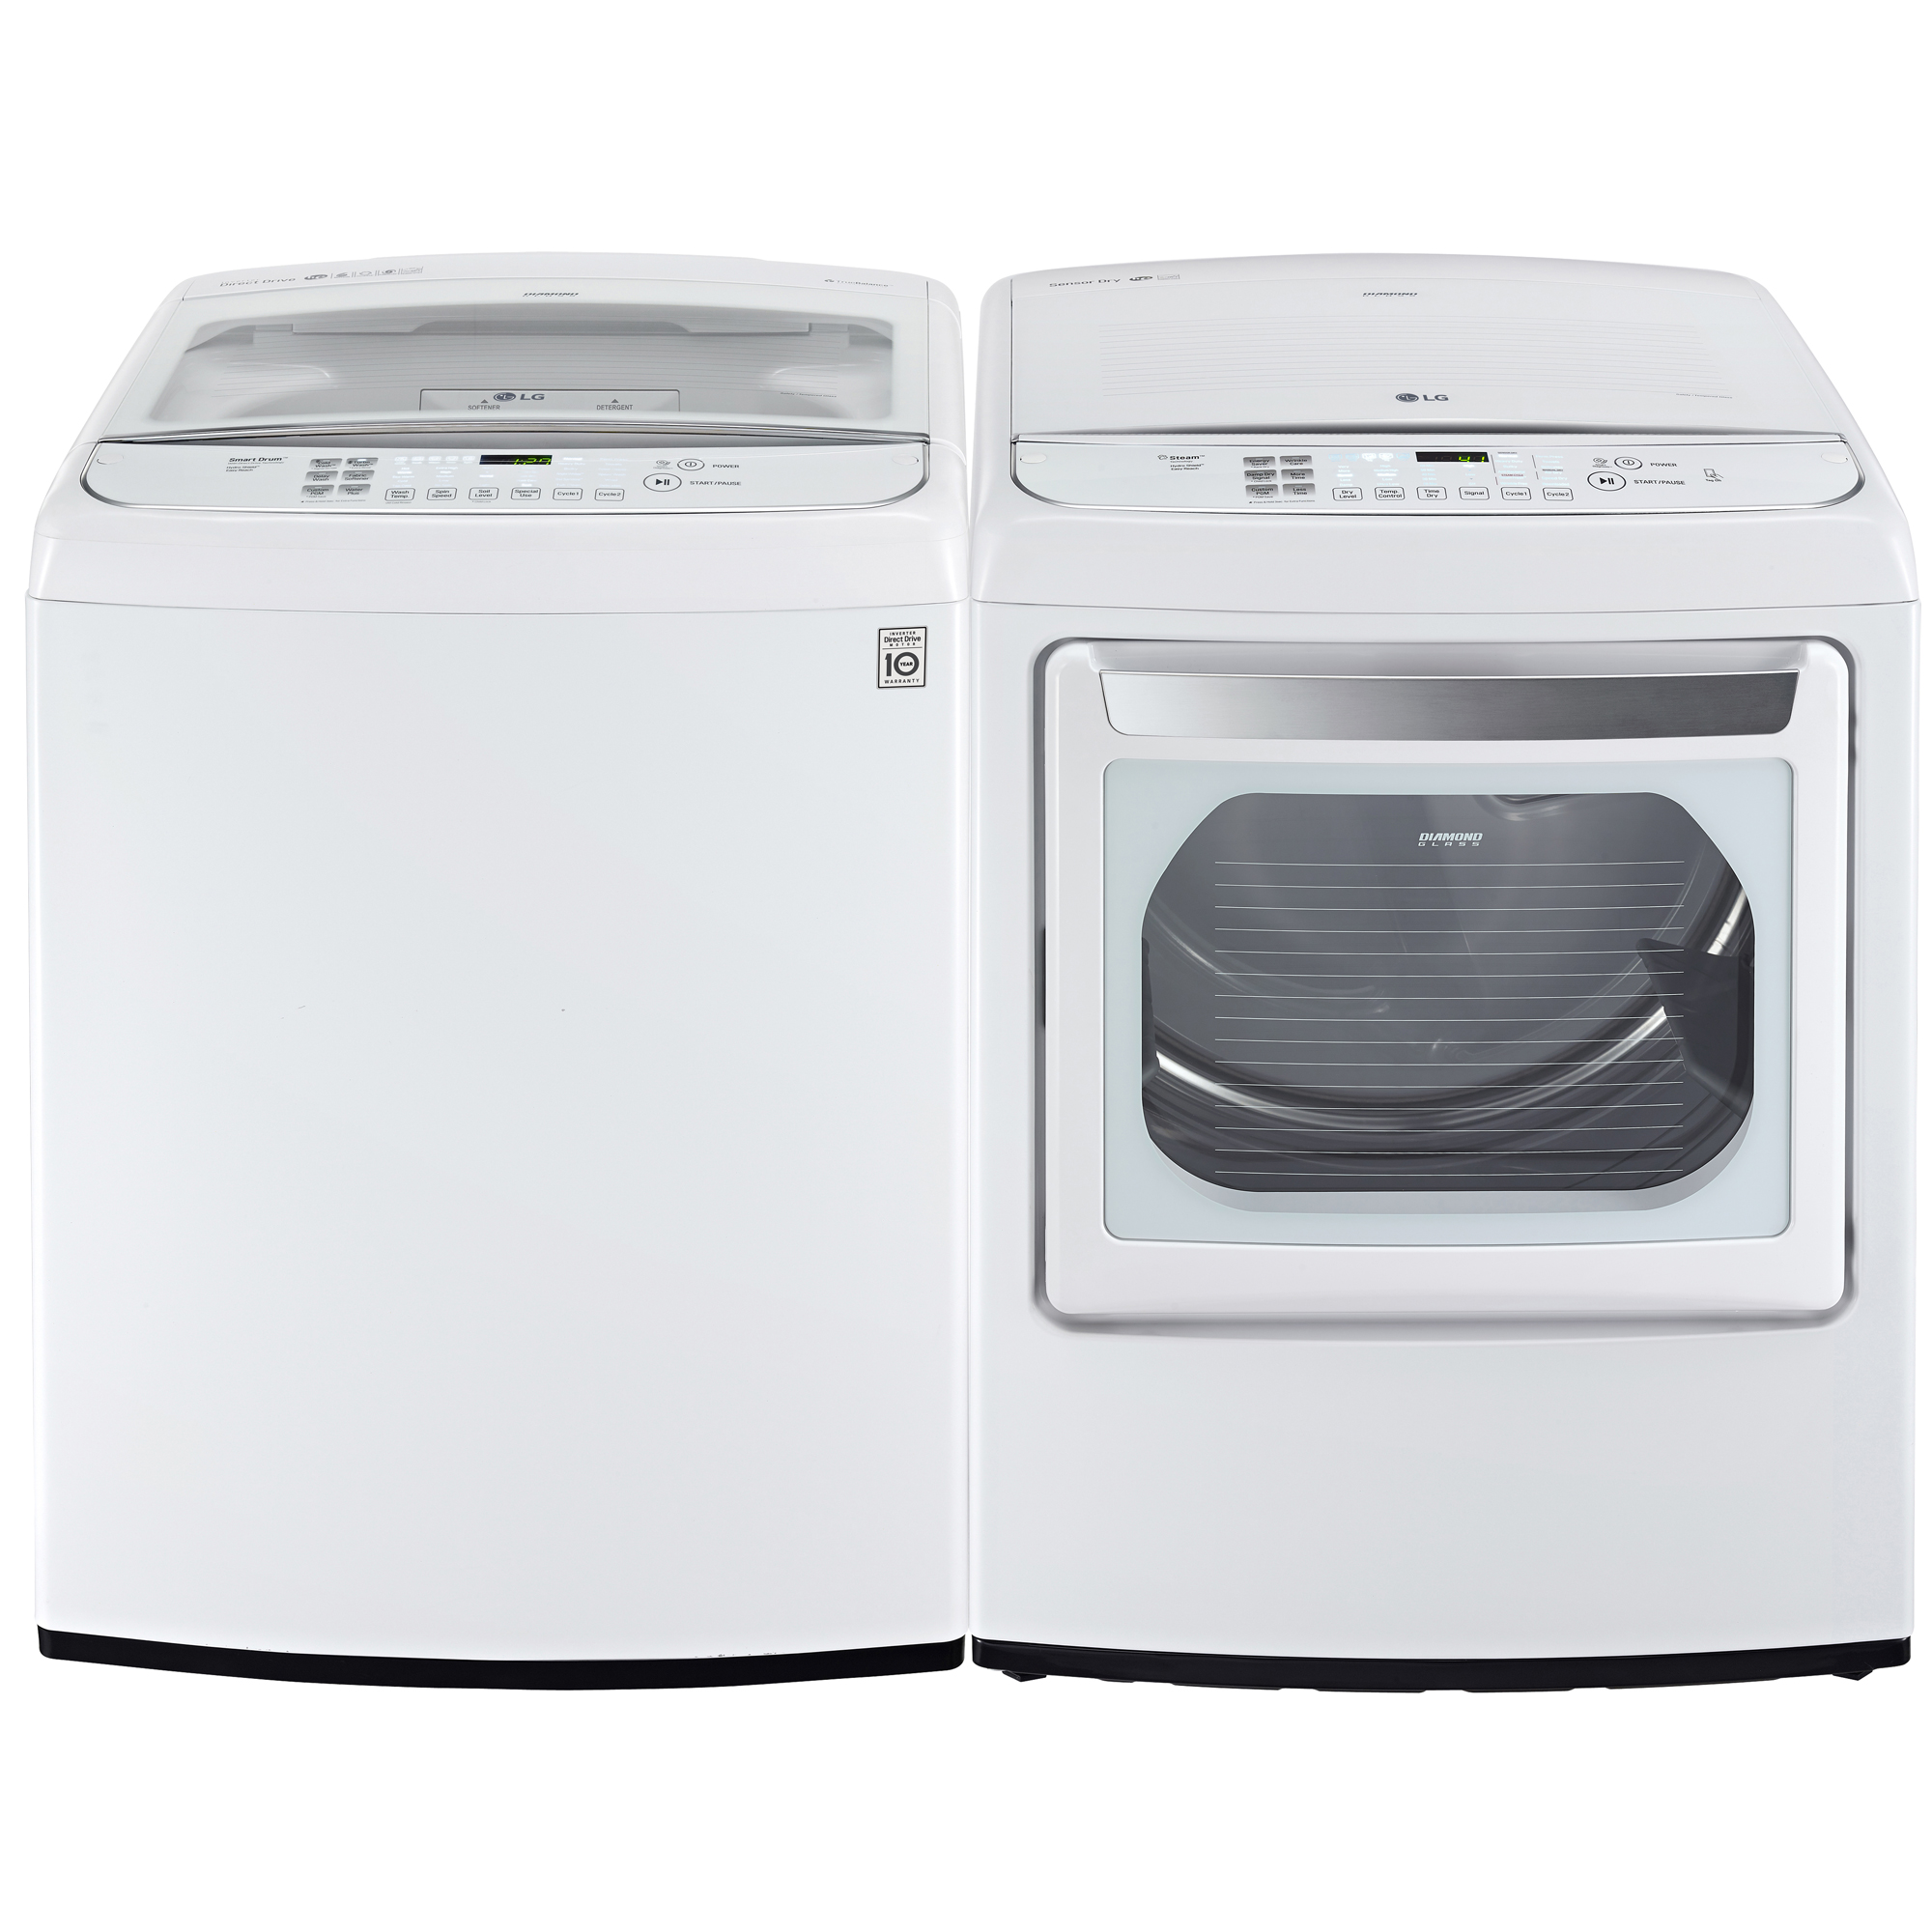 LG DLEY1701WE 7.3 cu. ft. Steam Electric Dryer w/ Front Controls and EasyLoad™ Door – White